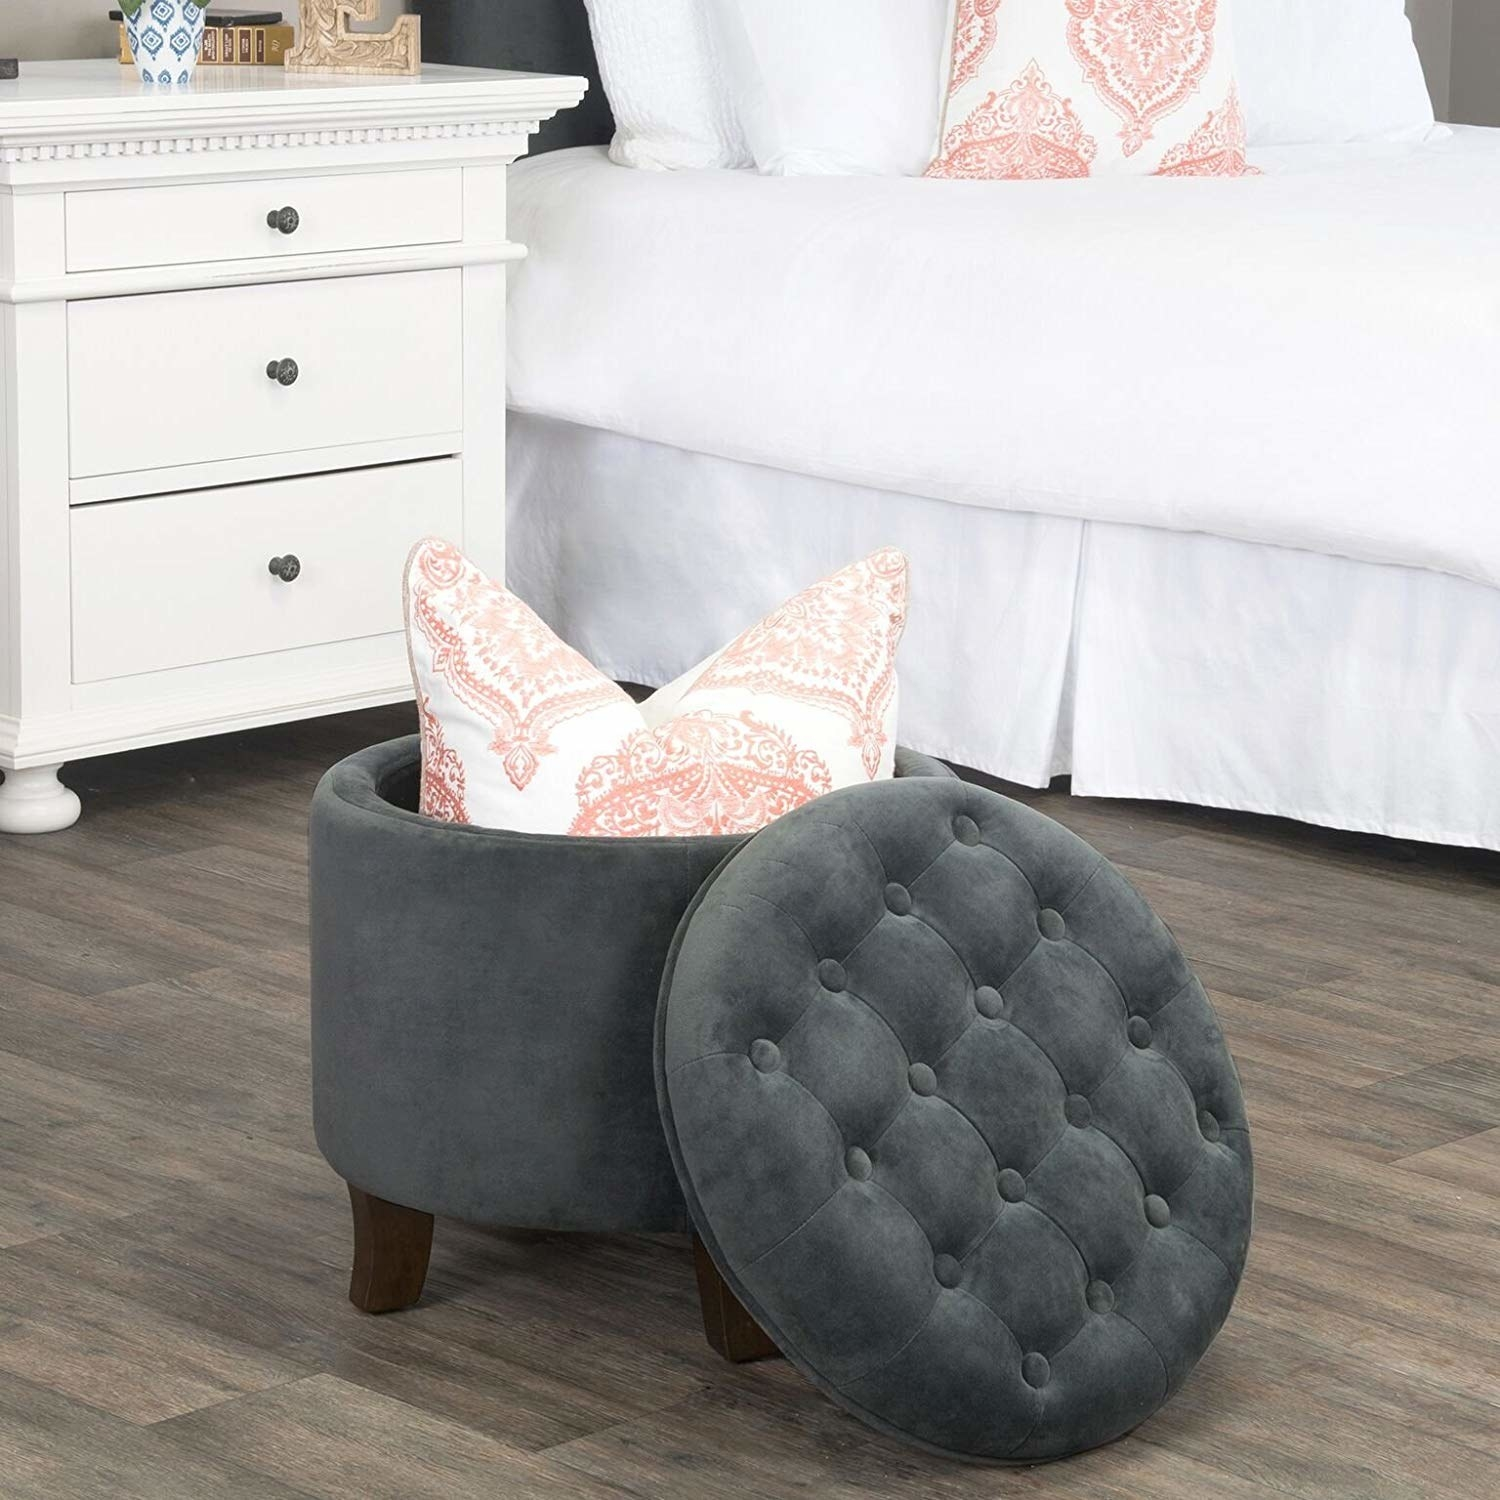 round upholstered dark gray storage ottoman with a pillow stored inside